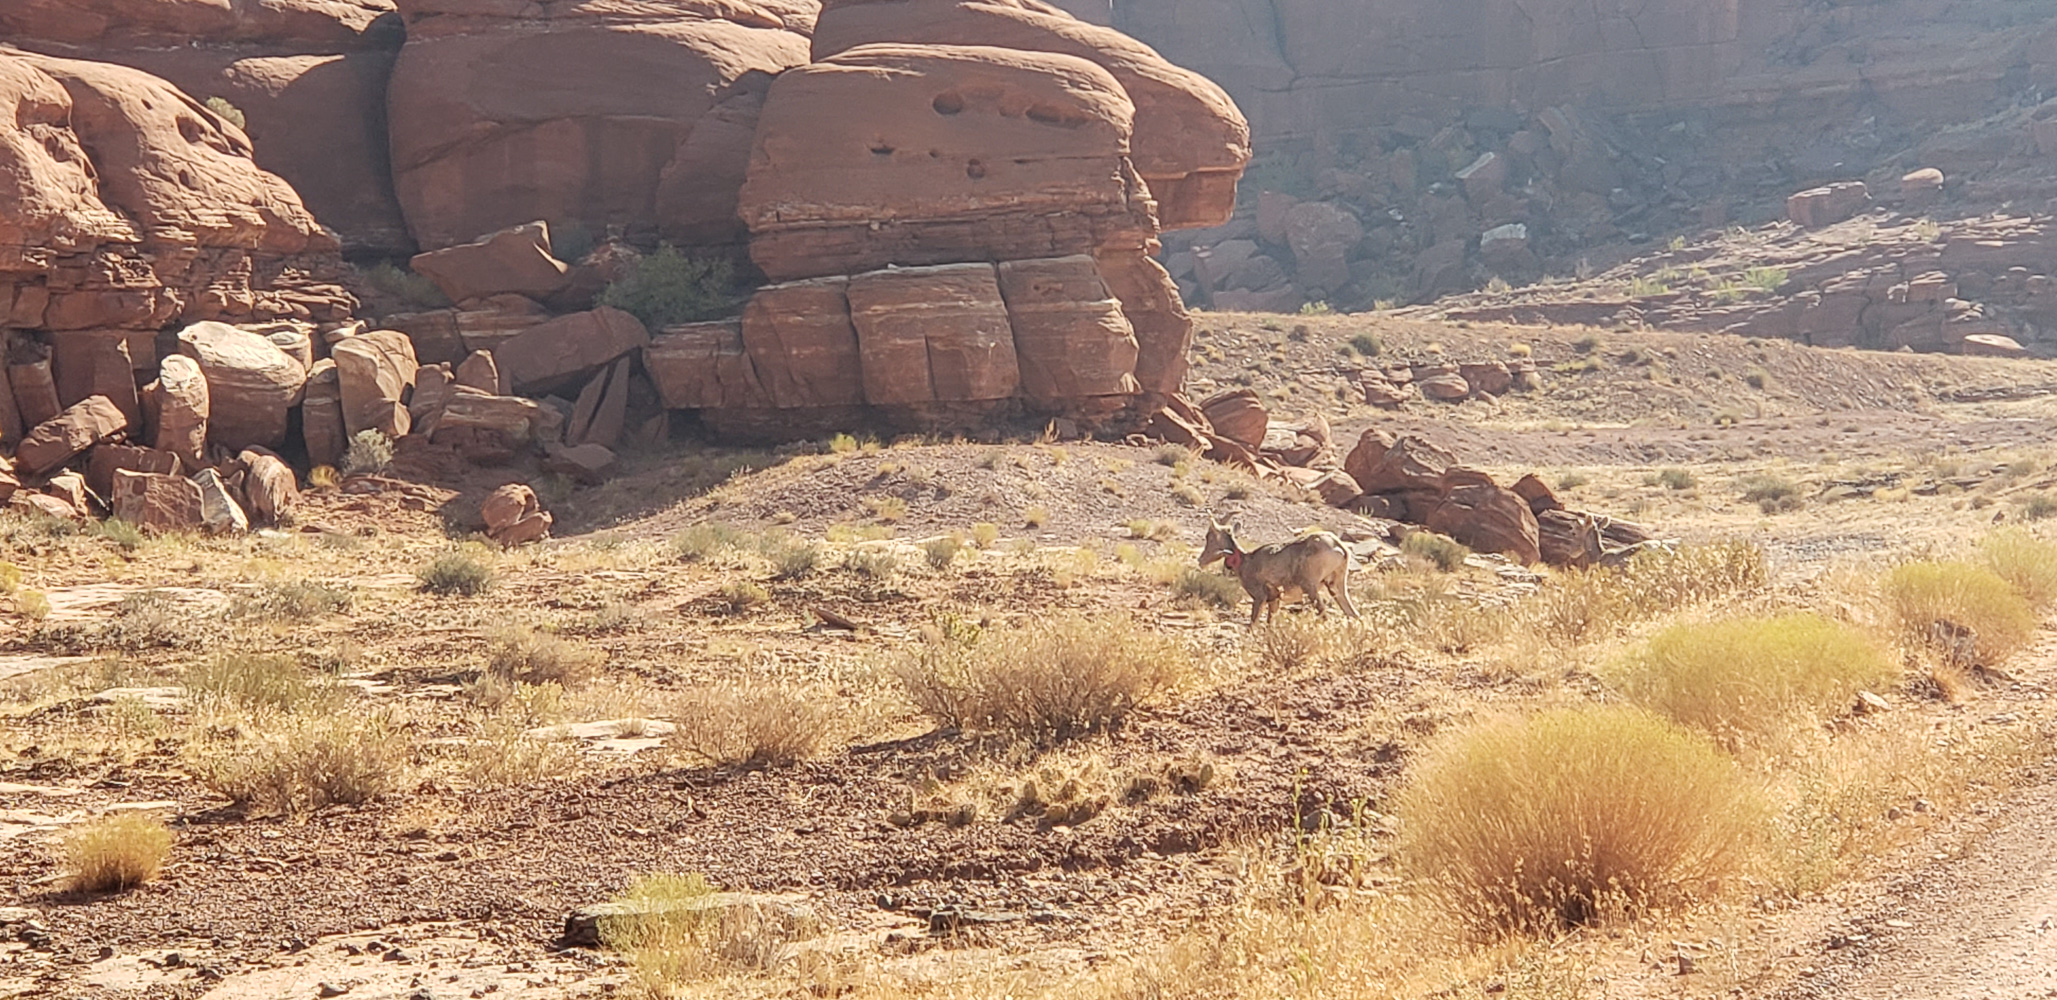 Bighoen sheep along Potash road in Islands of the Sky portion of Canyonlands National Park